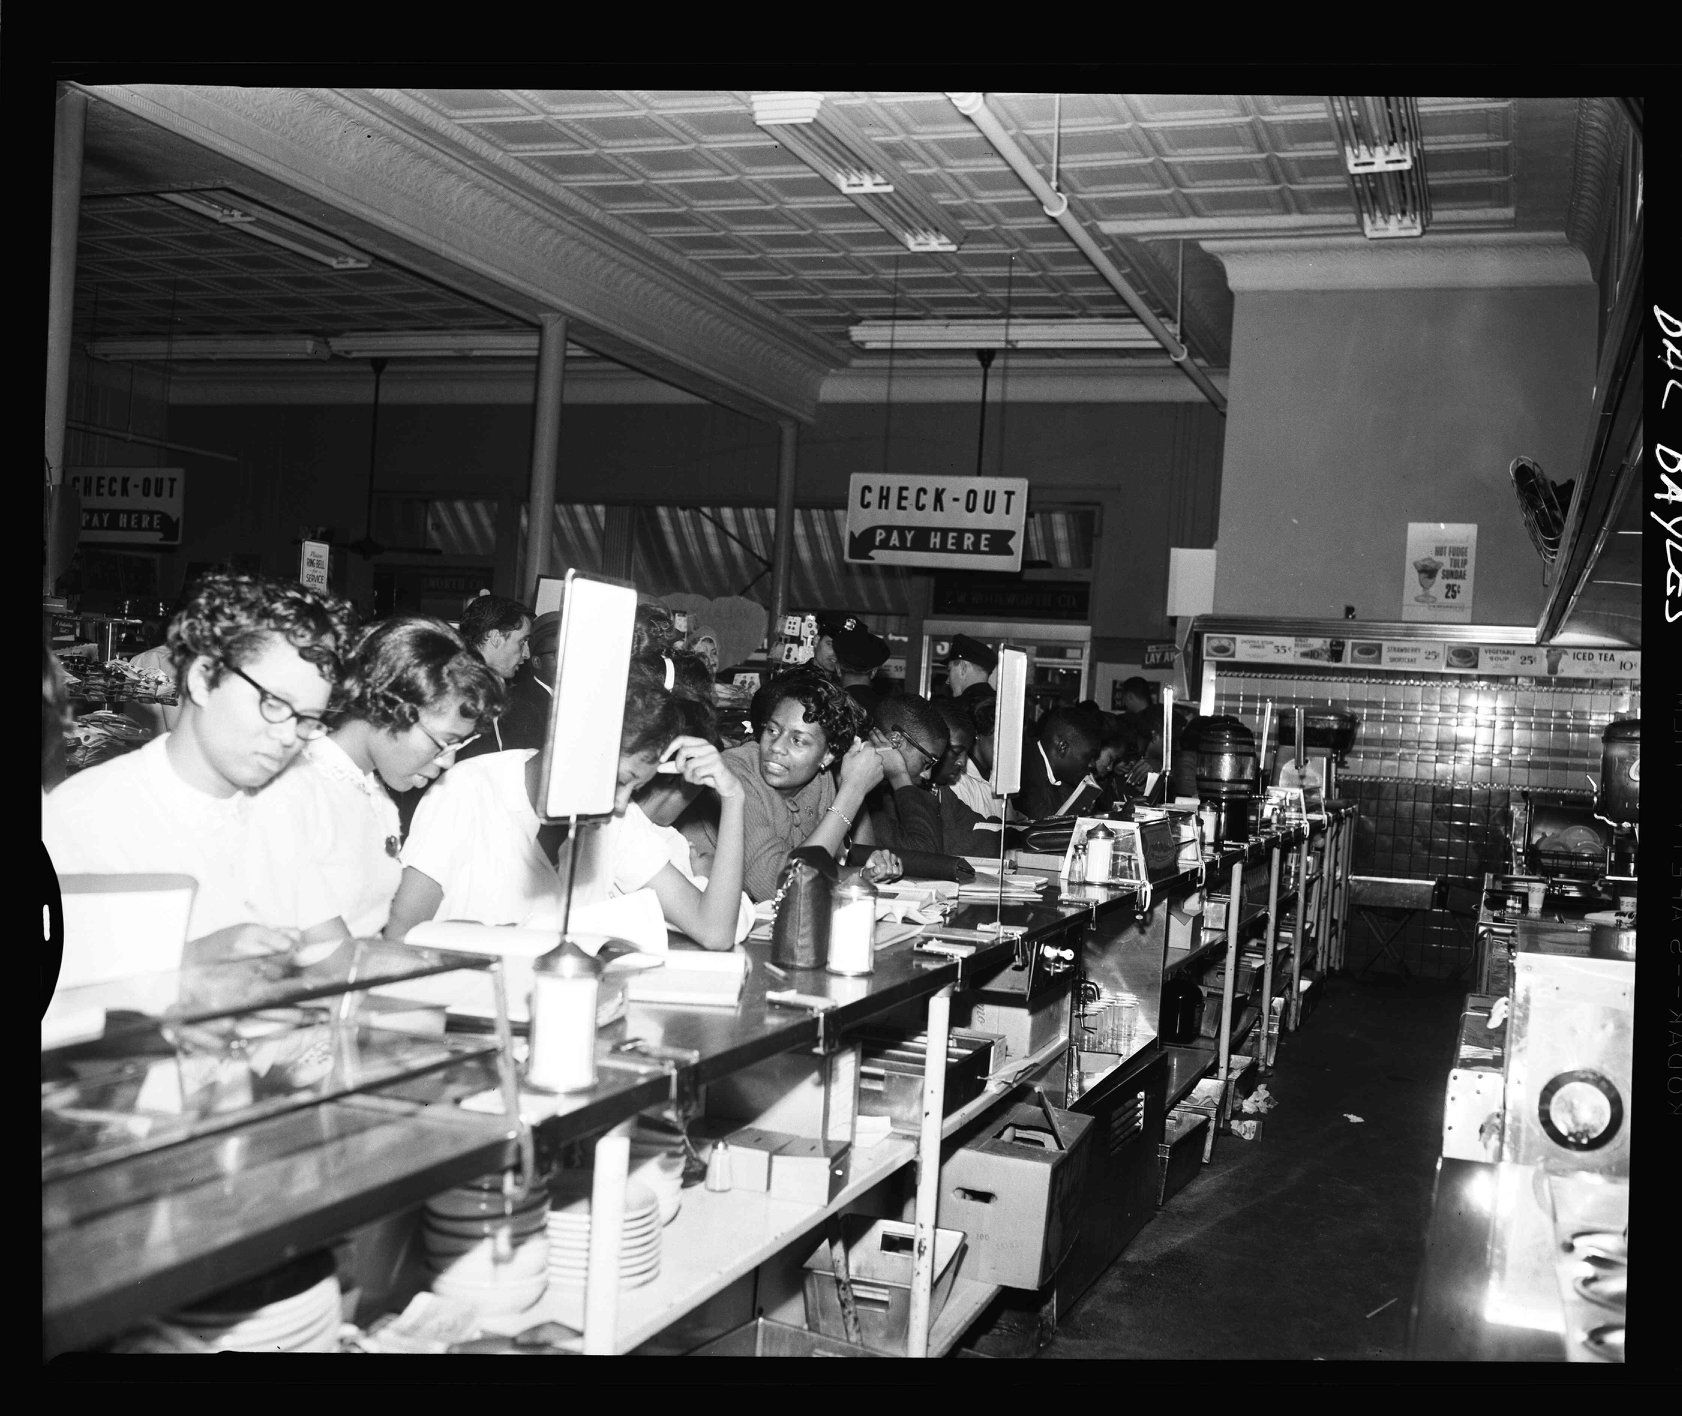 A photo from the High Point Civil Rights sit in at the Woolworth's Department Store.